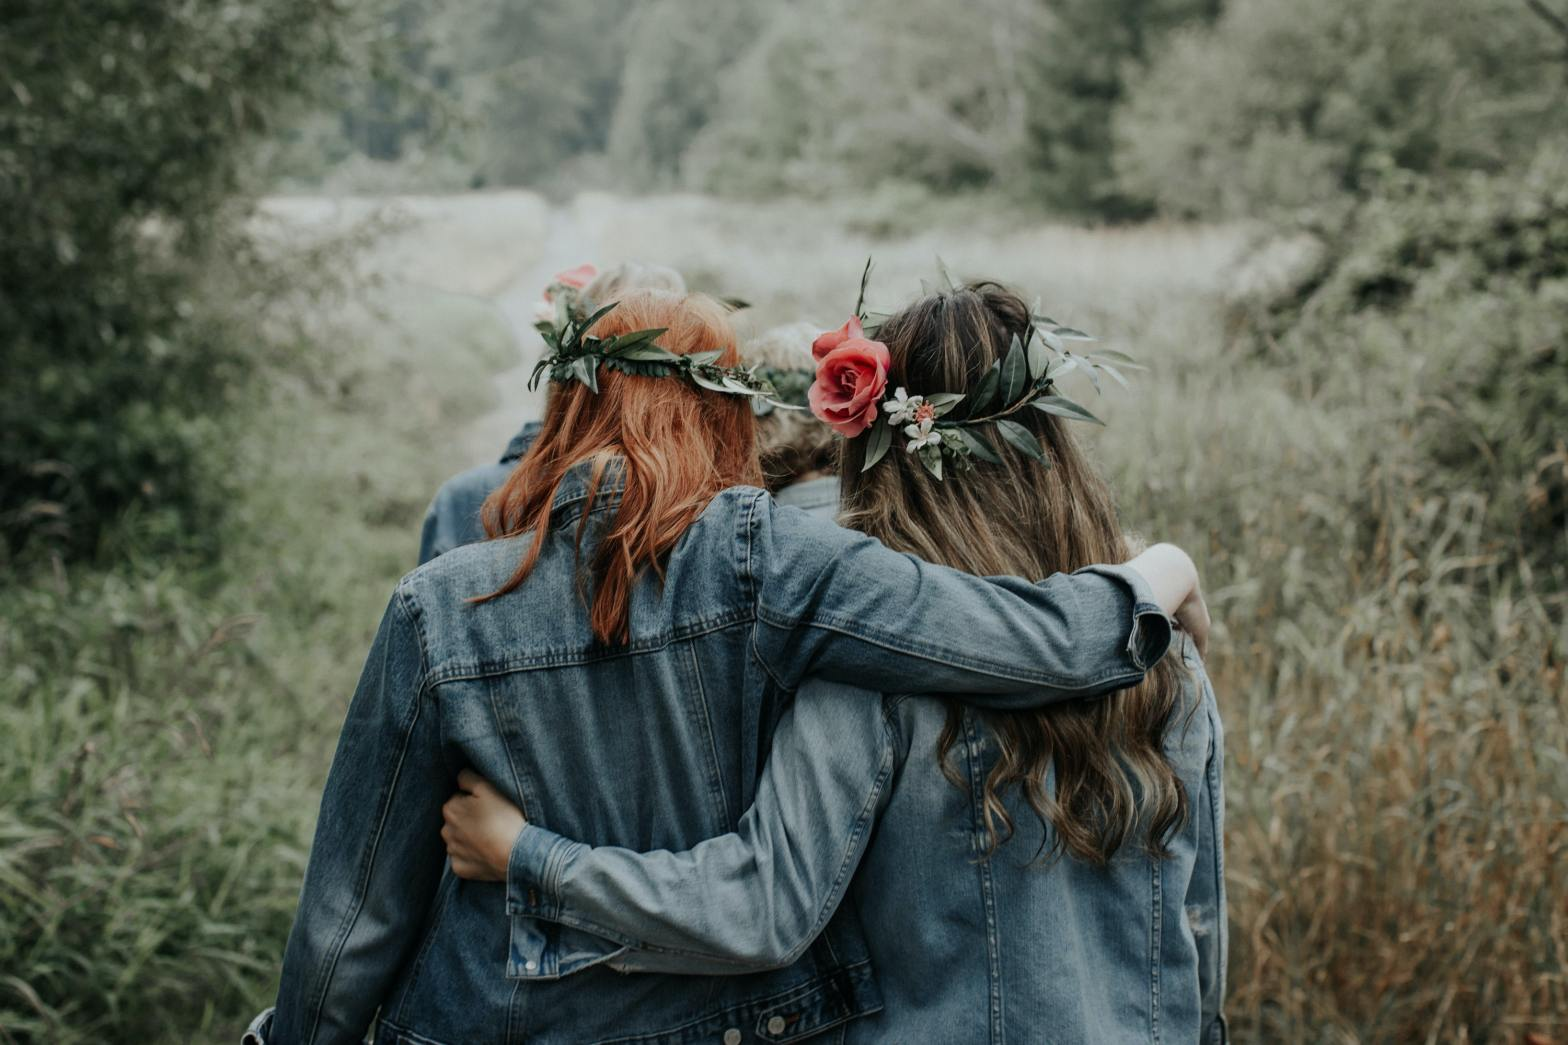 Women walking together with flowers in their hair